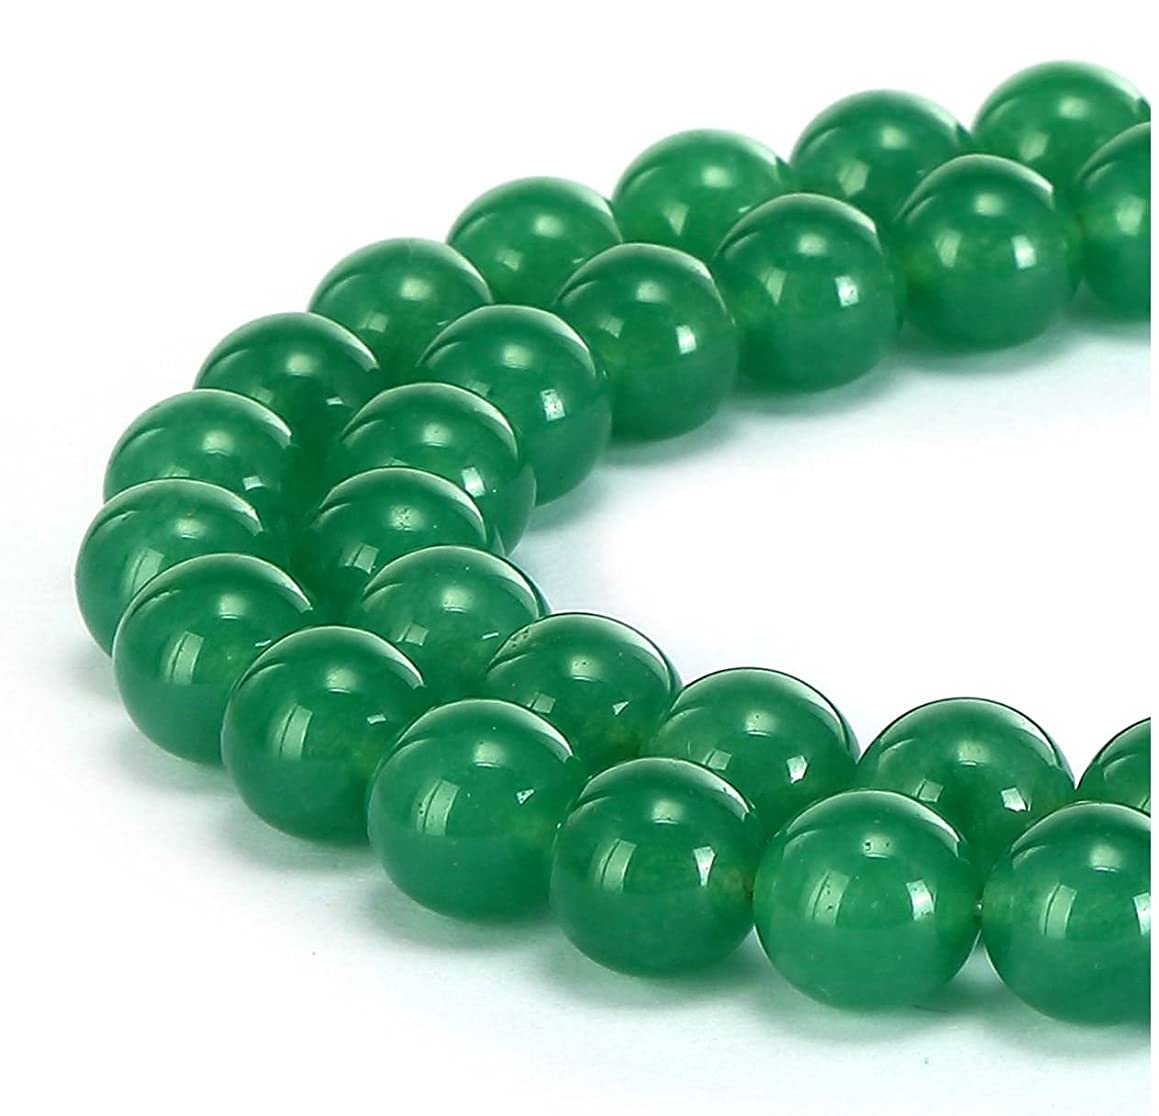 AAA Natural Green Agate 8mm Gemstone Round Loose Stone Beads for Jewelry Making ~15.5